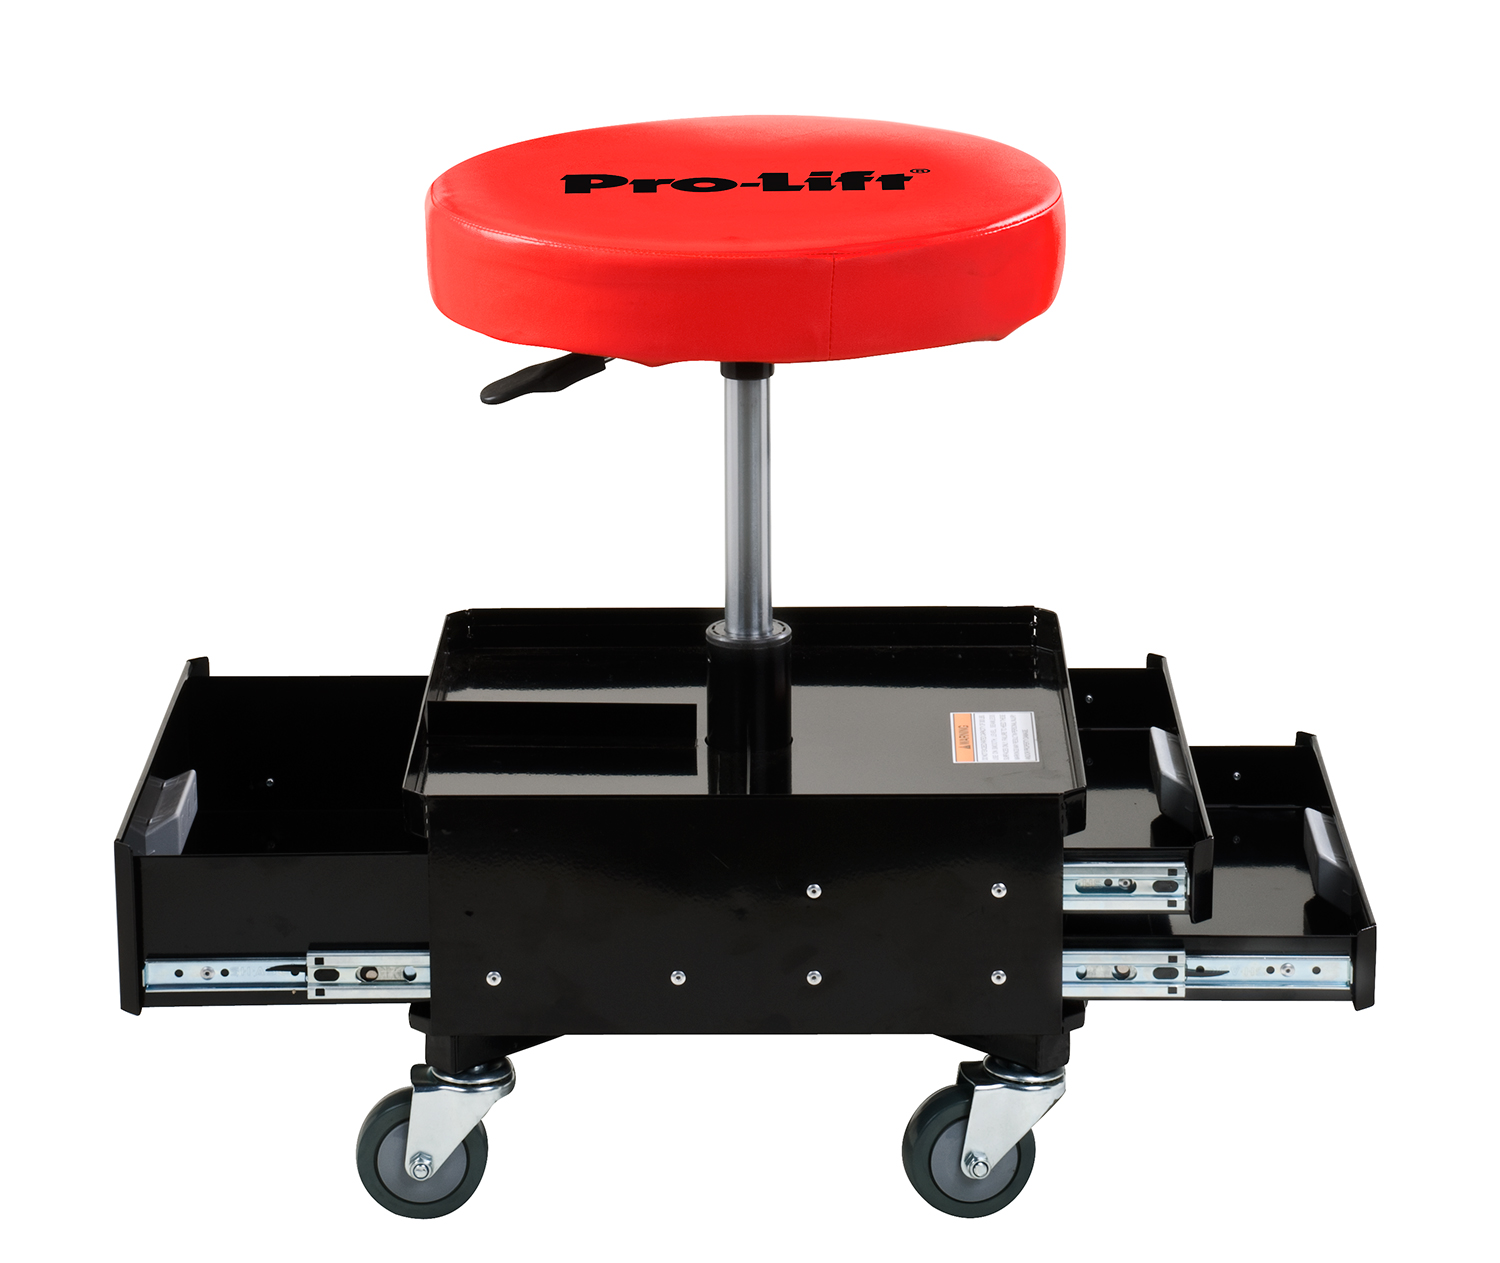 Pneumatic Chair Pro Lift Pneumatic Chair W Dual Tool Trays 2 Small